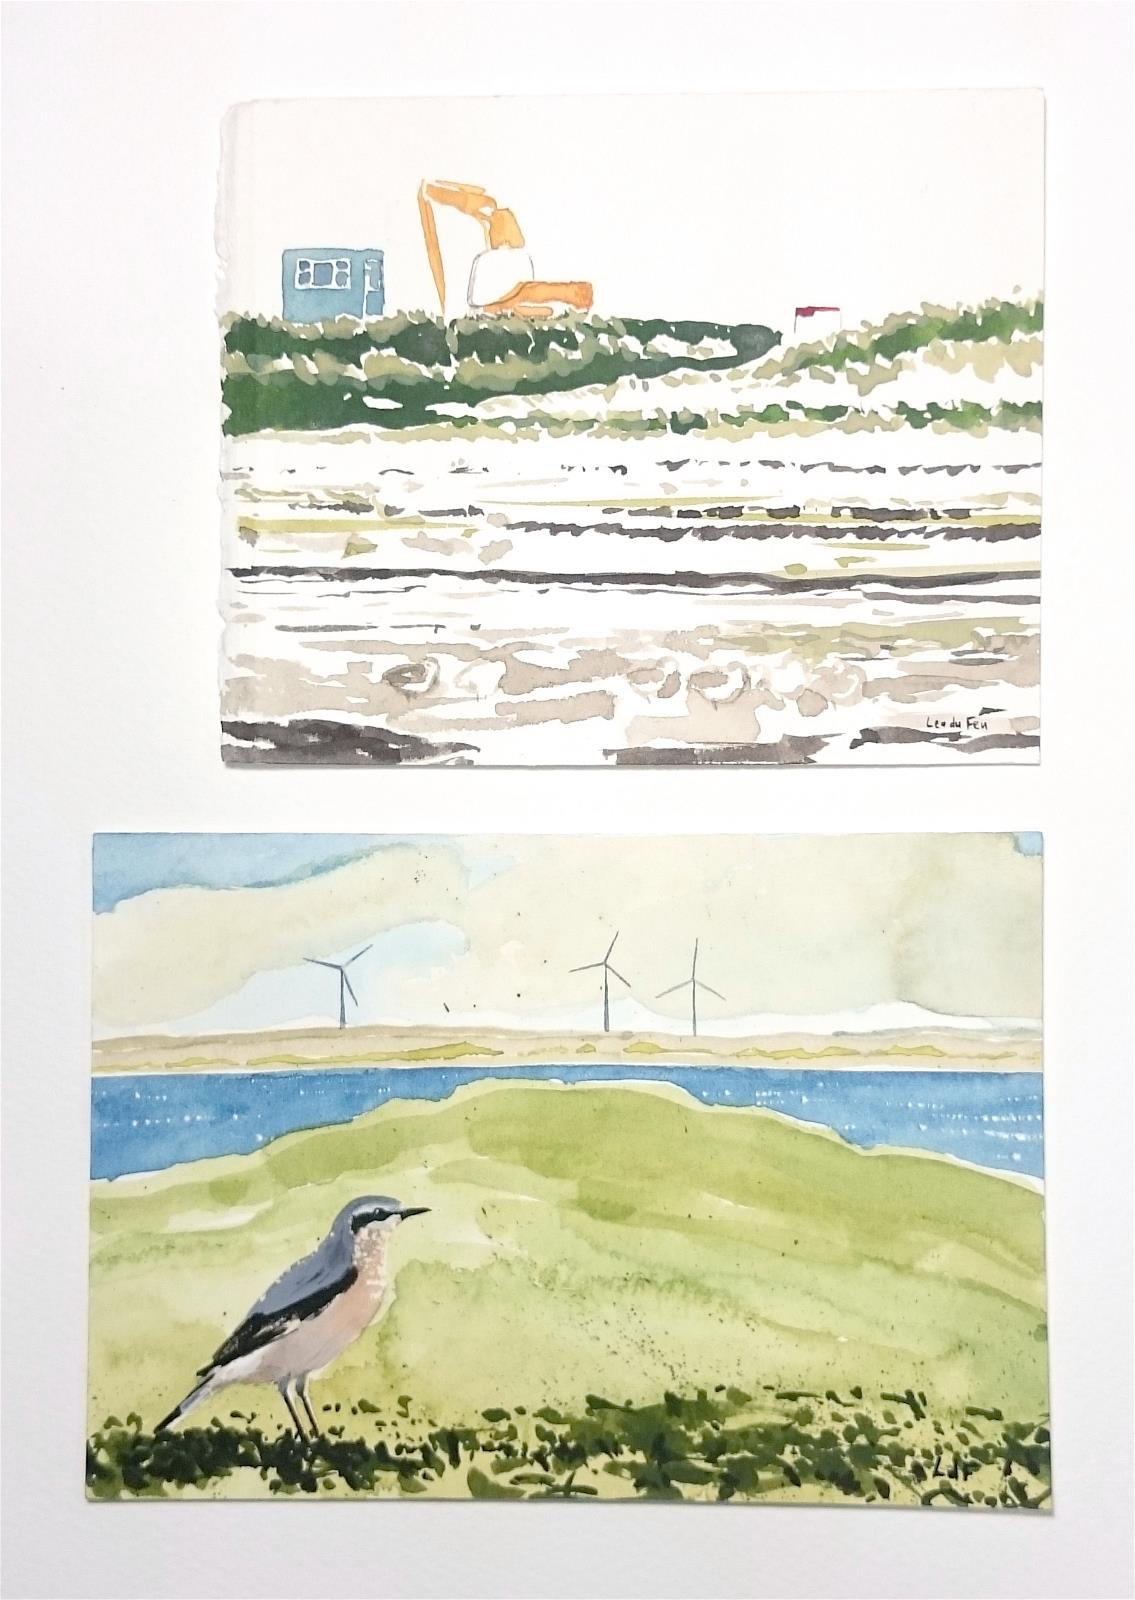 Hebridean diptych - excavator and waders, wheatear and turbines